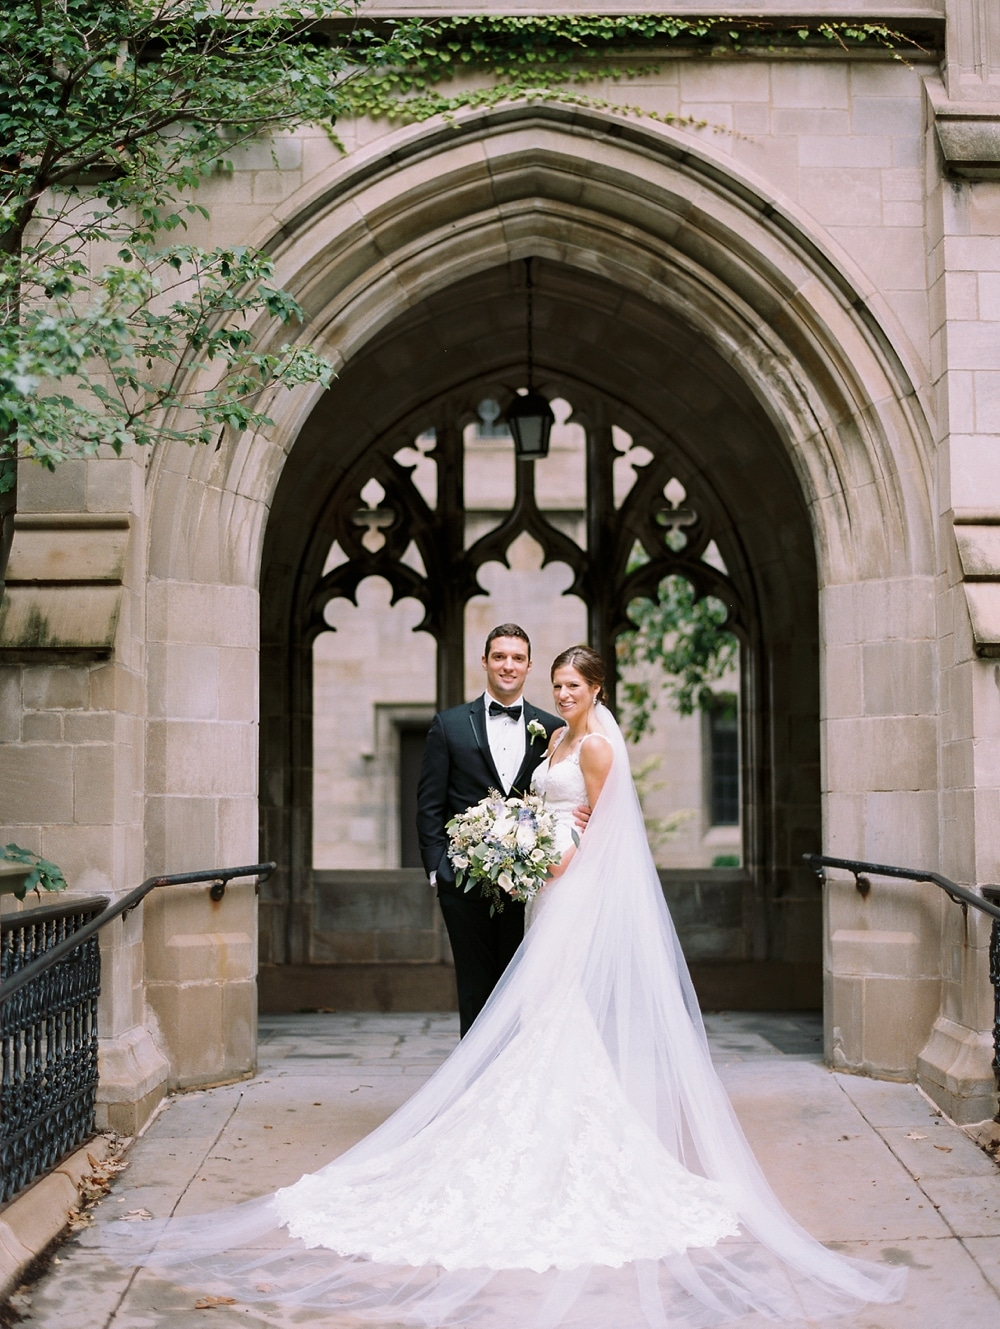 kristin-la-voie-photography-university-of-chicago-wedding-bridgeport-art-center-bond-chapel-143